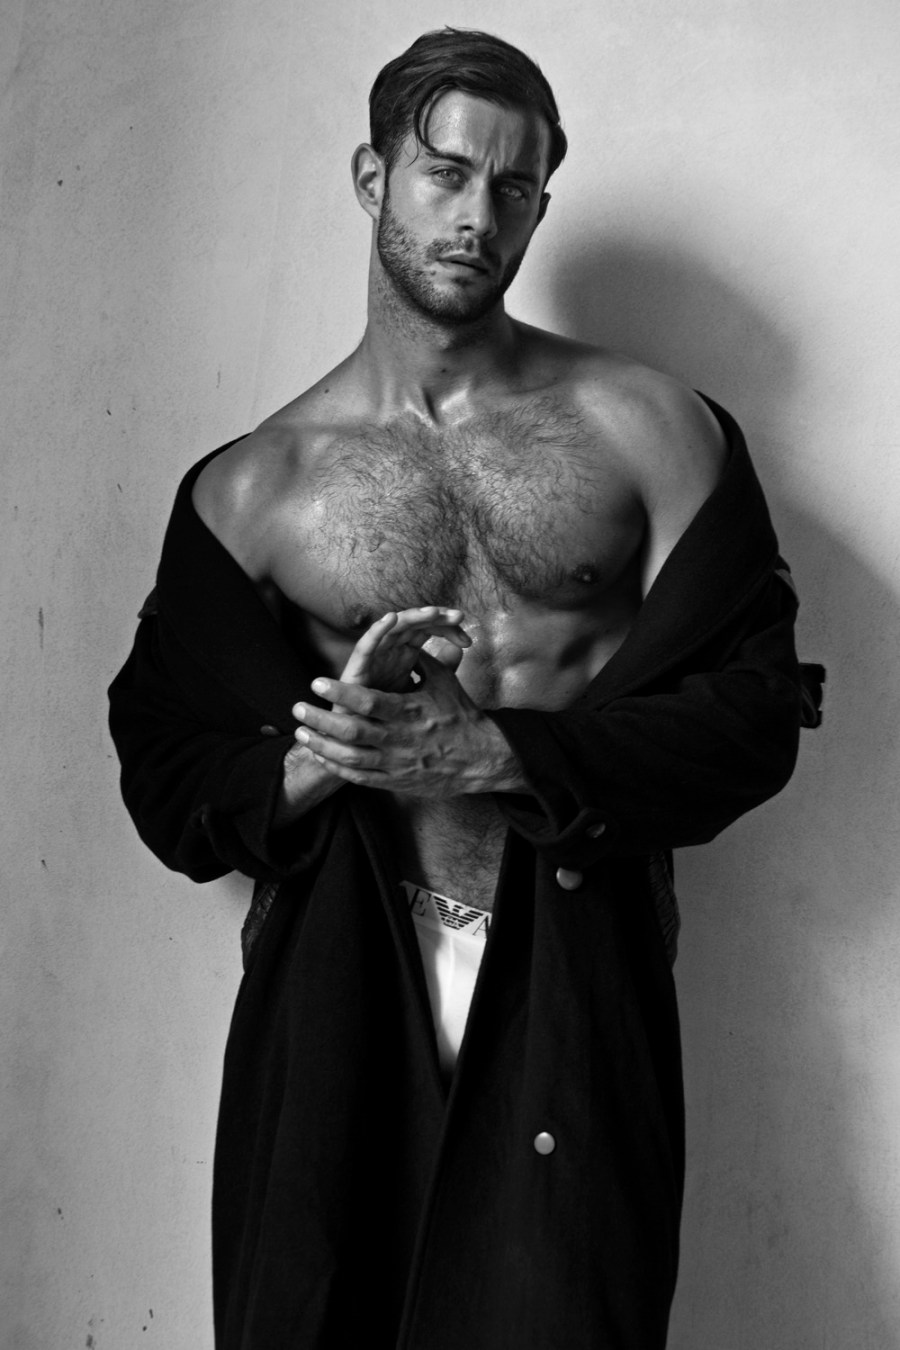 Photographer Sandy Lang is becoming in favorite portraits fitness and sexy models like Adam Phillips who is posing his entire fit body to the lens of the fab shooter.